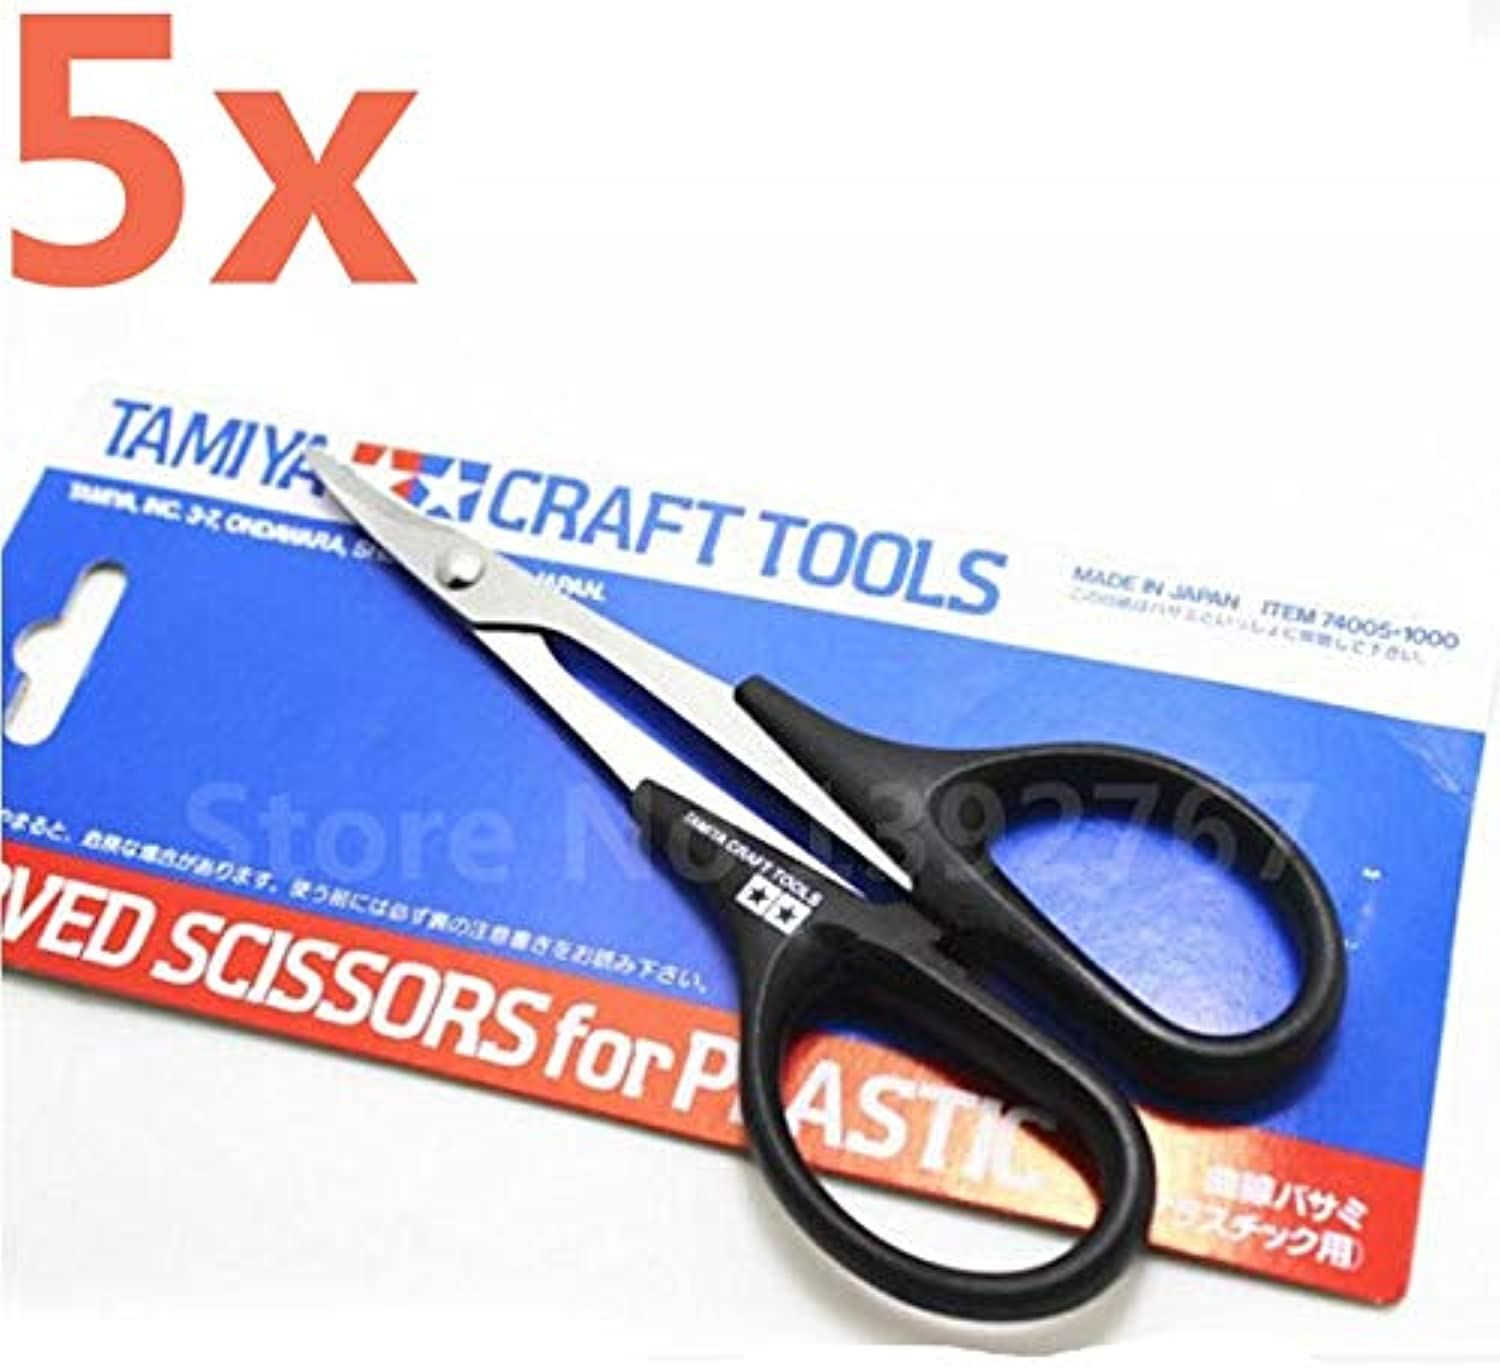 Generic 5p Tamiya Metal Hard Stainless Steel RC Car Scissor Toll 74005 for RC Vehicle Boat Body Shell Bodyshell Curved Scissors RC Tool